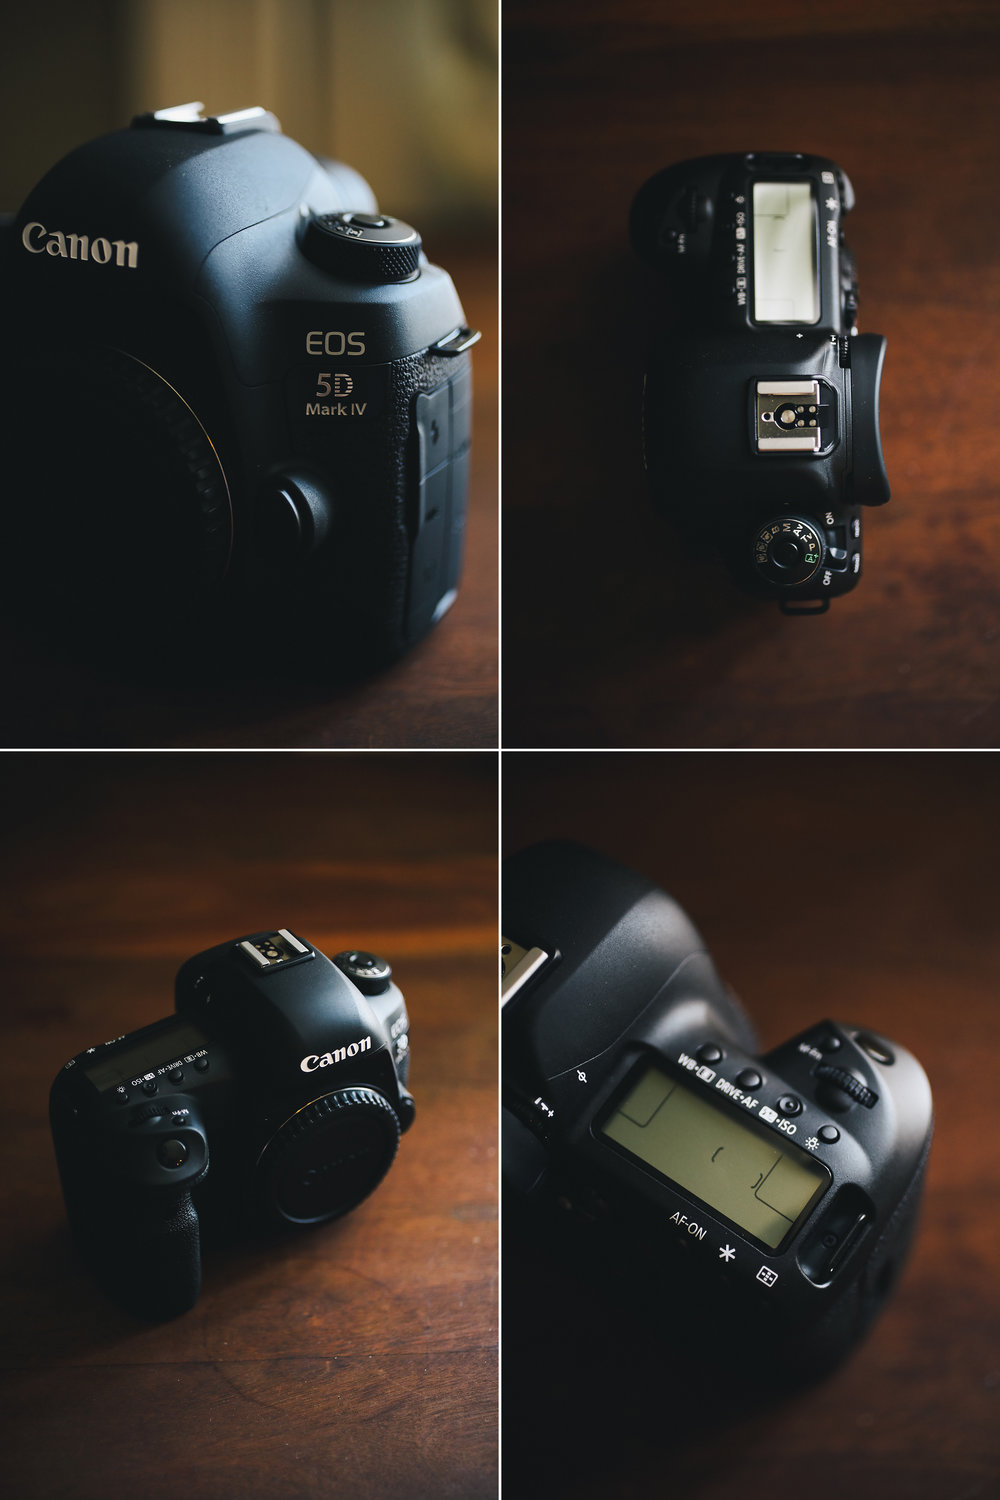 Canon 5D Mark IV– It's not the camera that makes the photographer but my 2 Canon 5D Mark IV camera bodies is the backbone that my work is created with. Nothing against Nikon at all. The first camera I ever owned was a Canon my dad bought me when I was a just a kid and ever since then, Canon has been the choice for me.